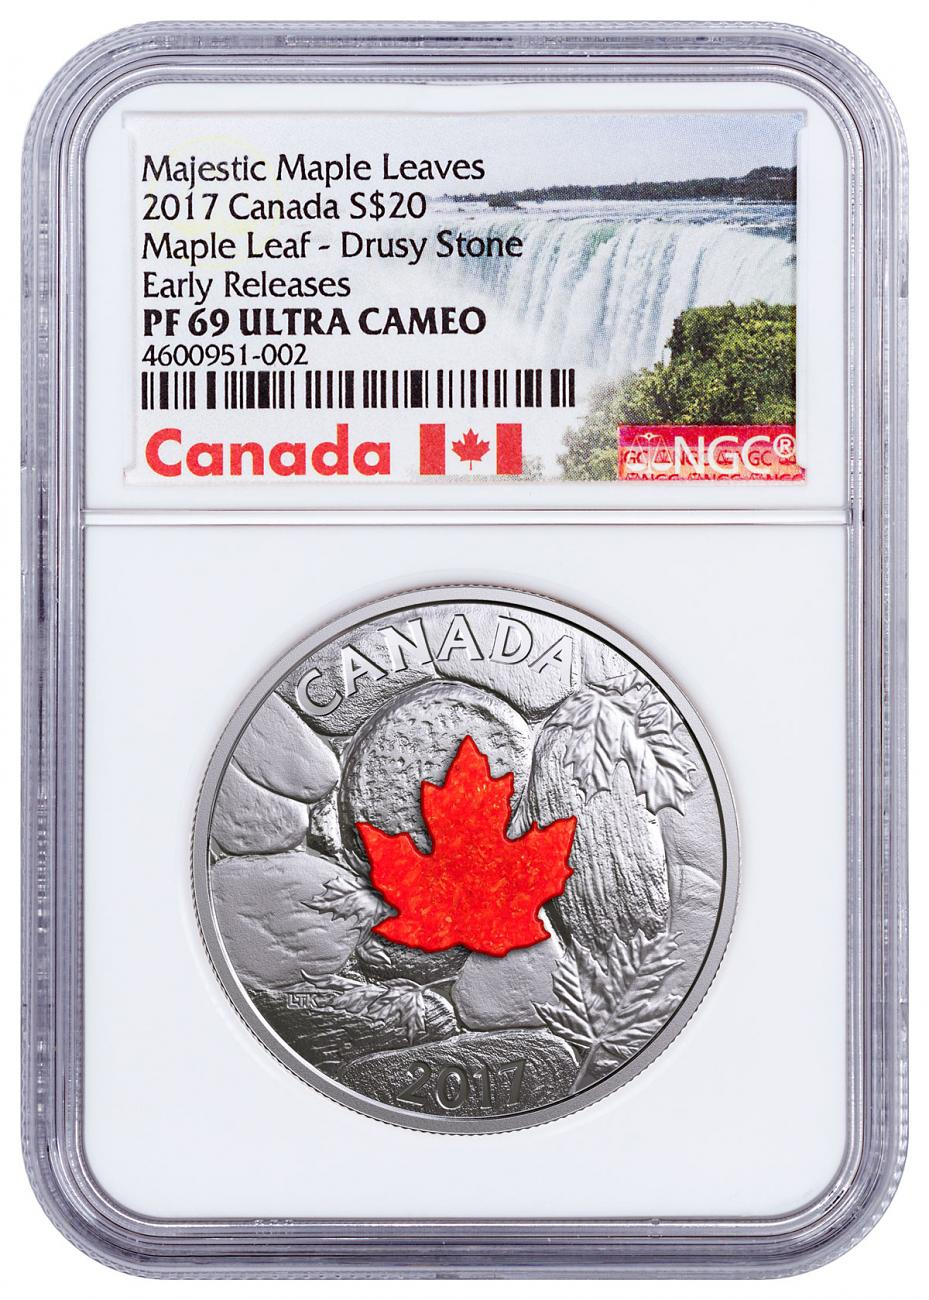 2017 Canada Majestic Maple Leaves - Drusy Stone 1 oz Silver Proof $20 Coin NGC PF69 UC ER Exclusive Canada Label